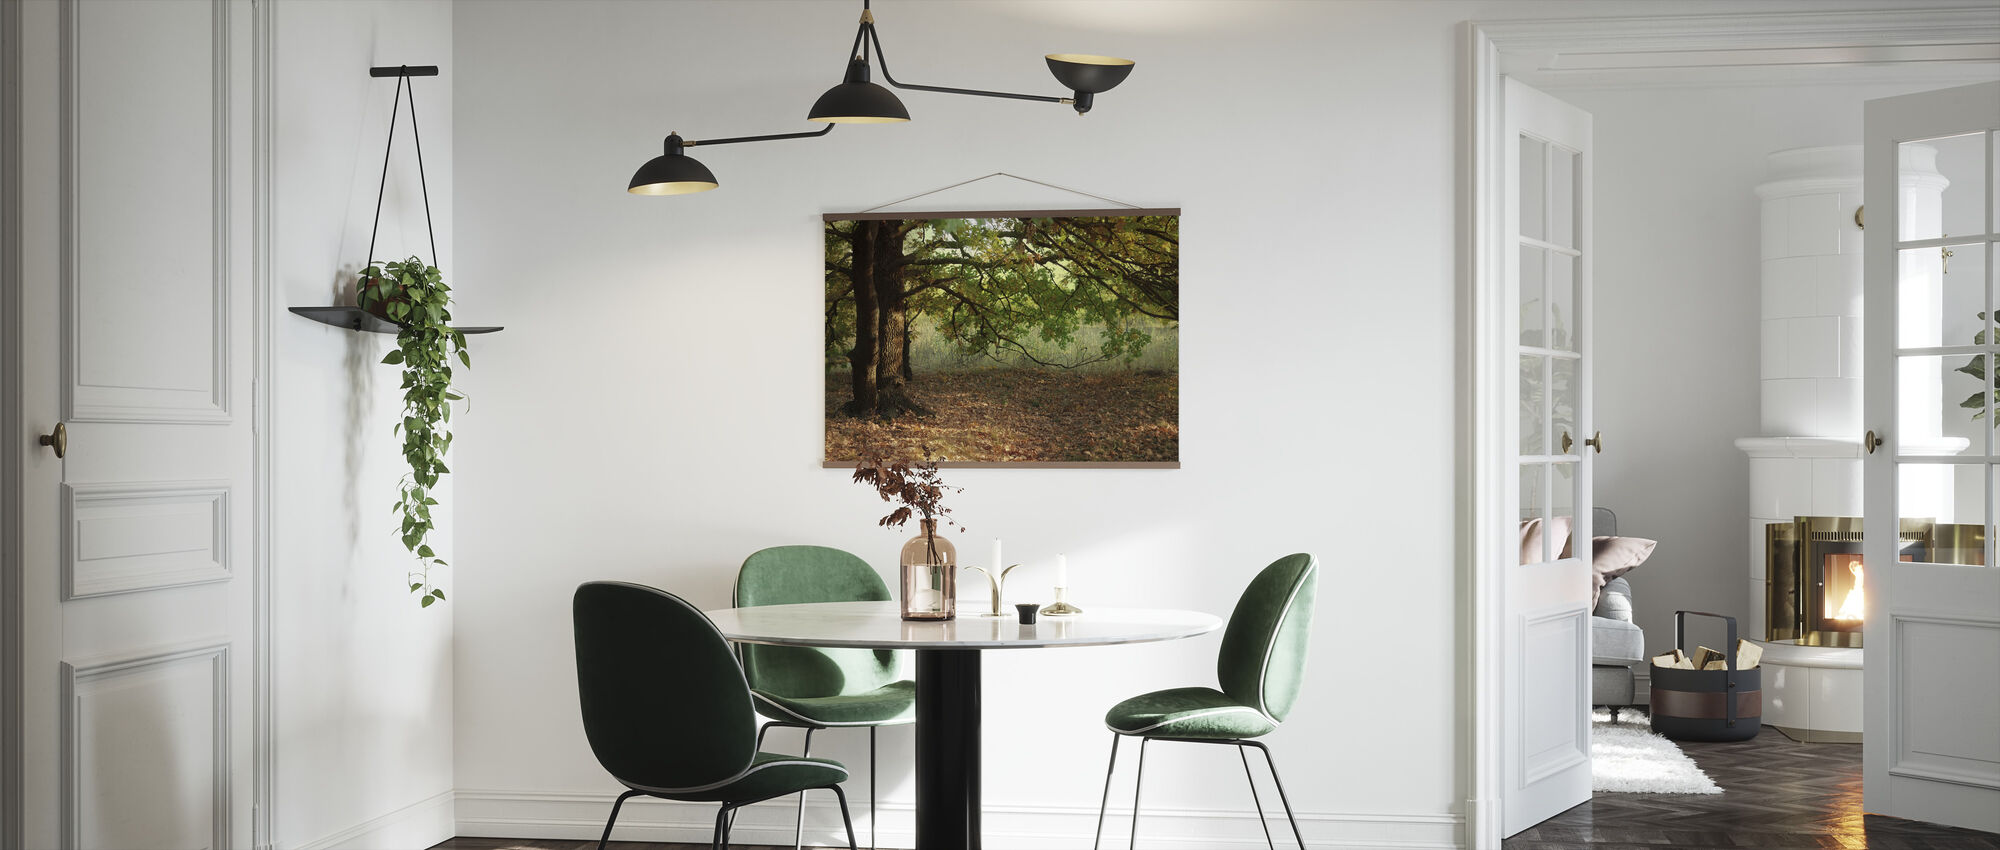 Evening Sun Beams on Autumn Leaves of Oak Tree - Poster - Kitchen